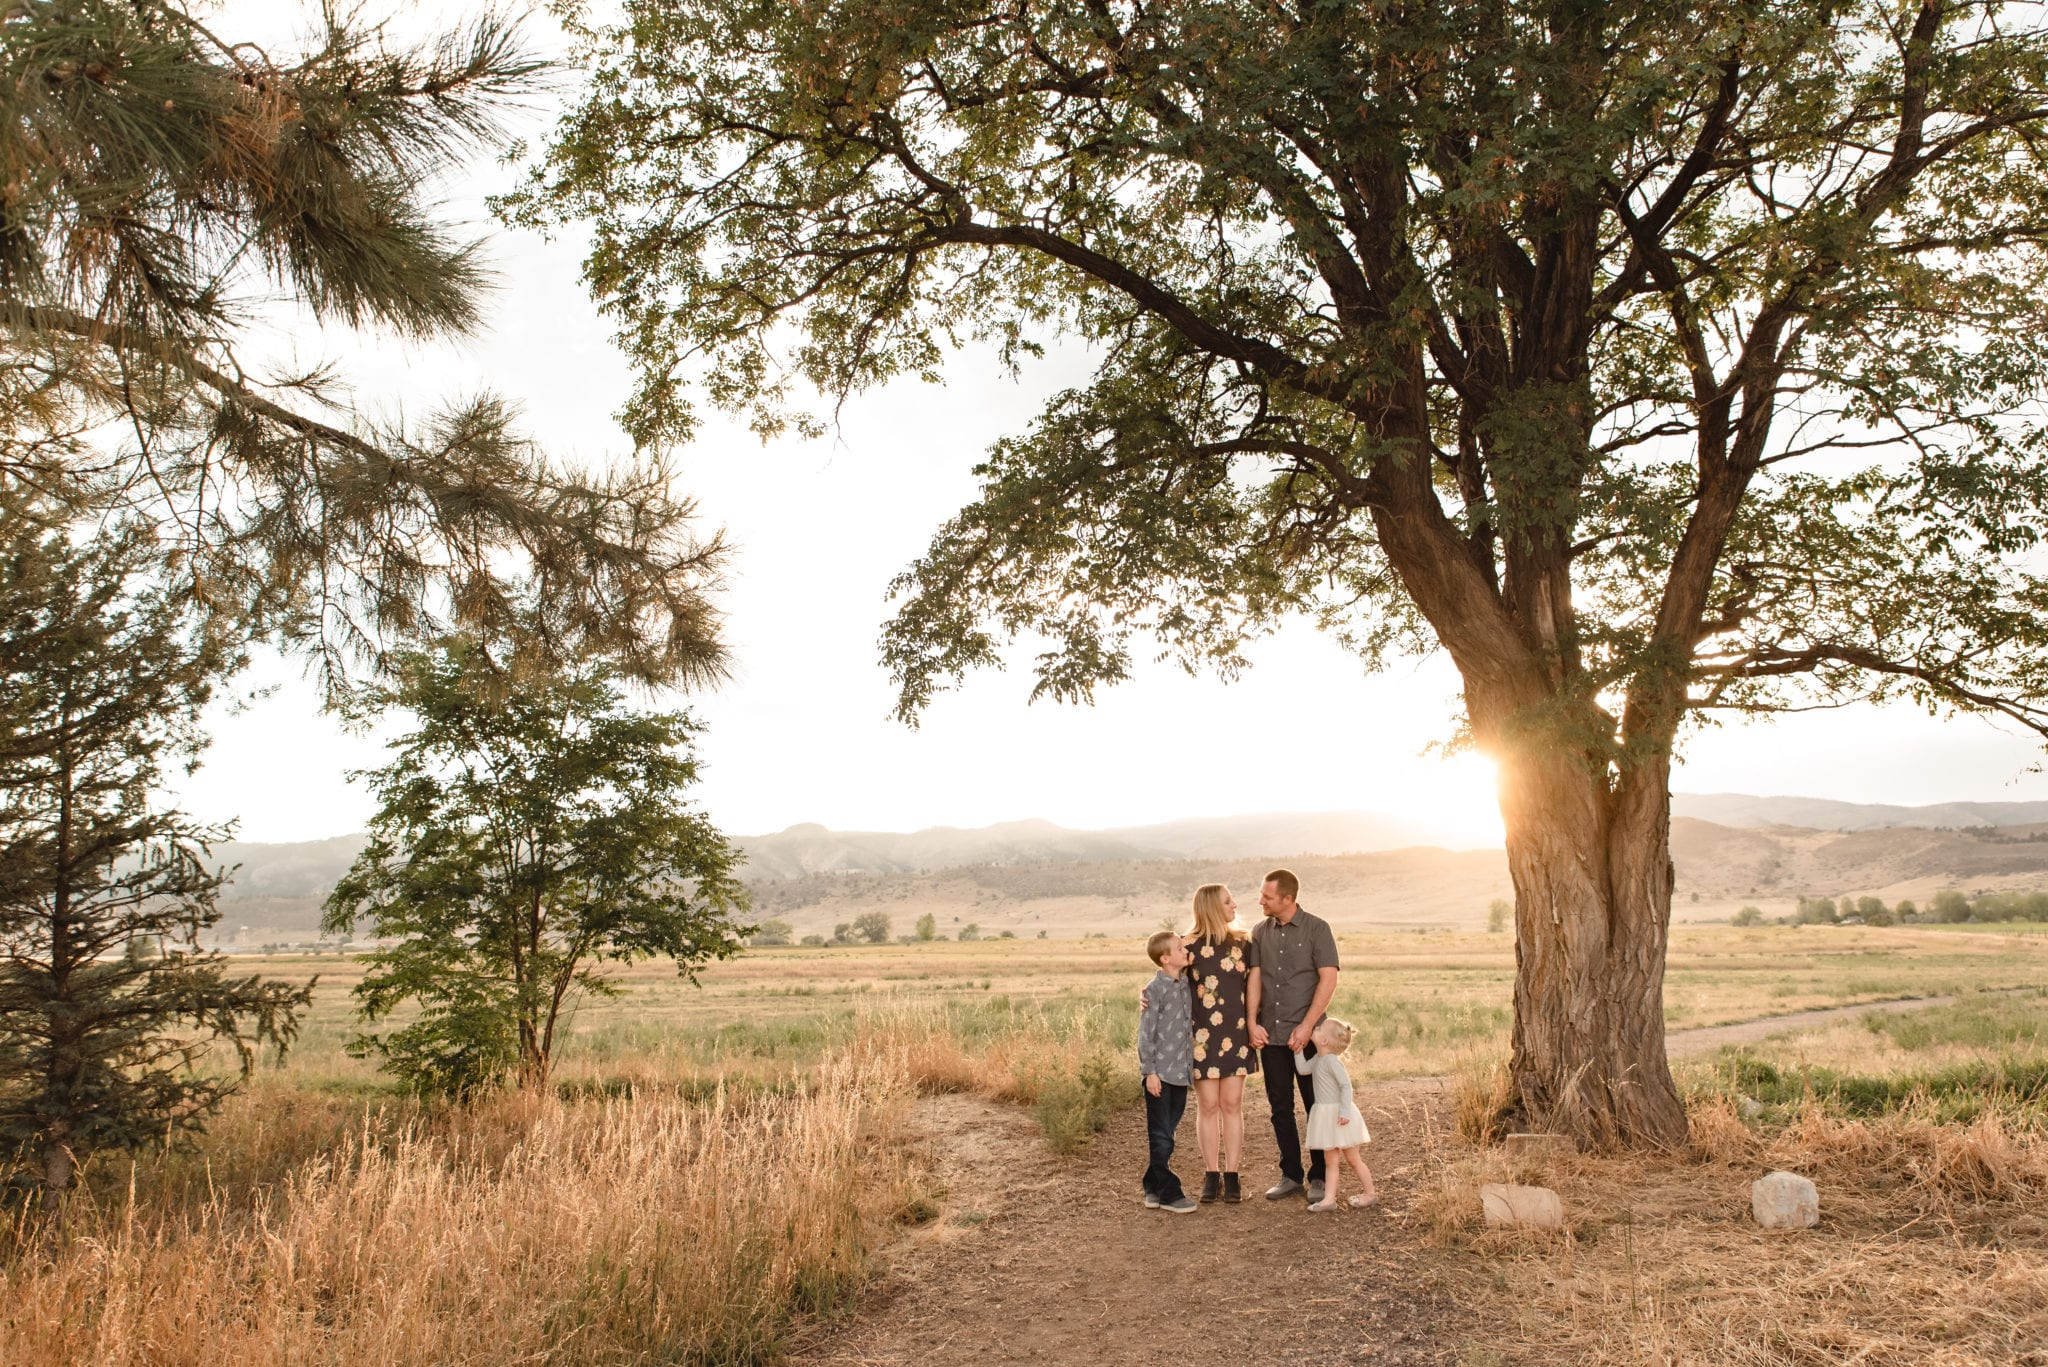 Fort Collins foothills family mini session in the mountains fall colors